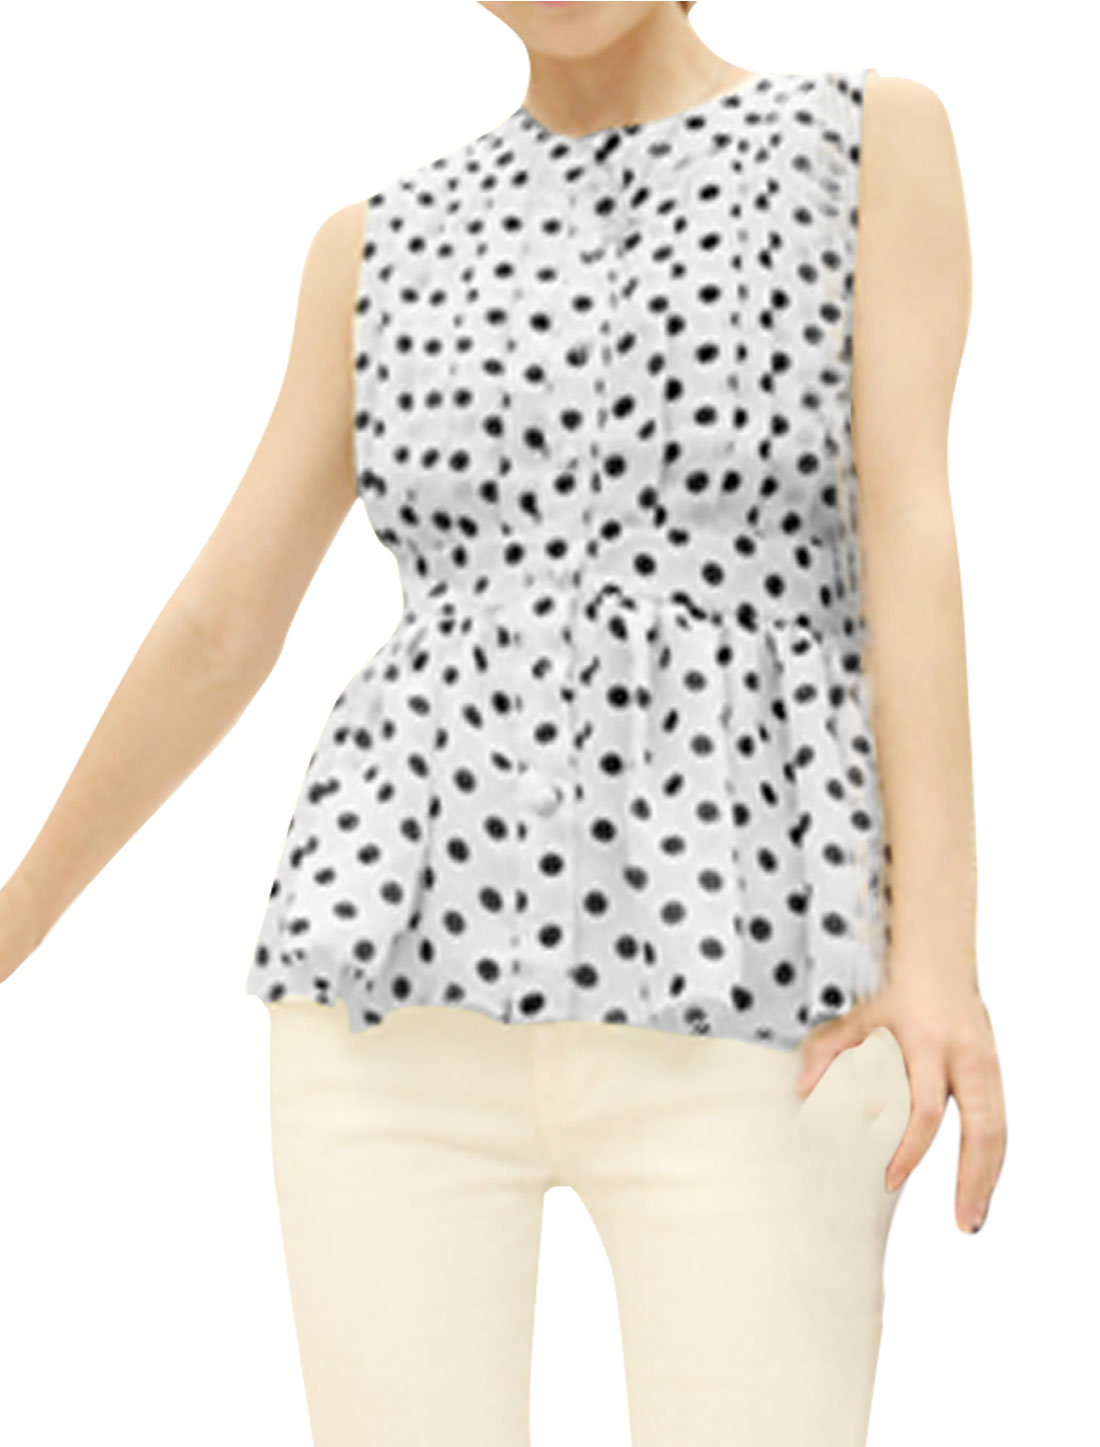 Ladies Single Breasted Sleeveless Dots Peplum Top Black White XS